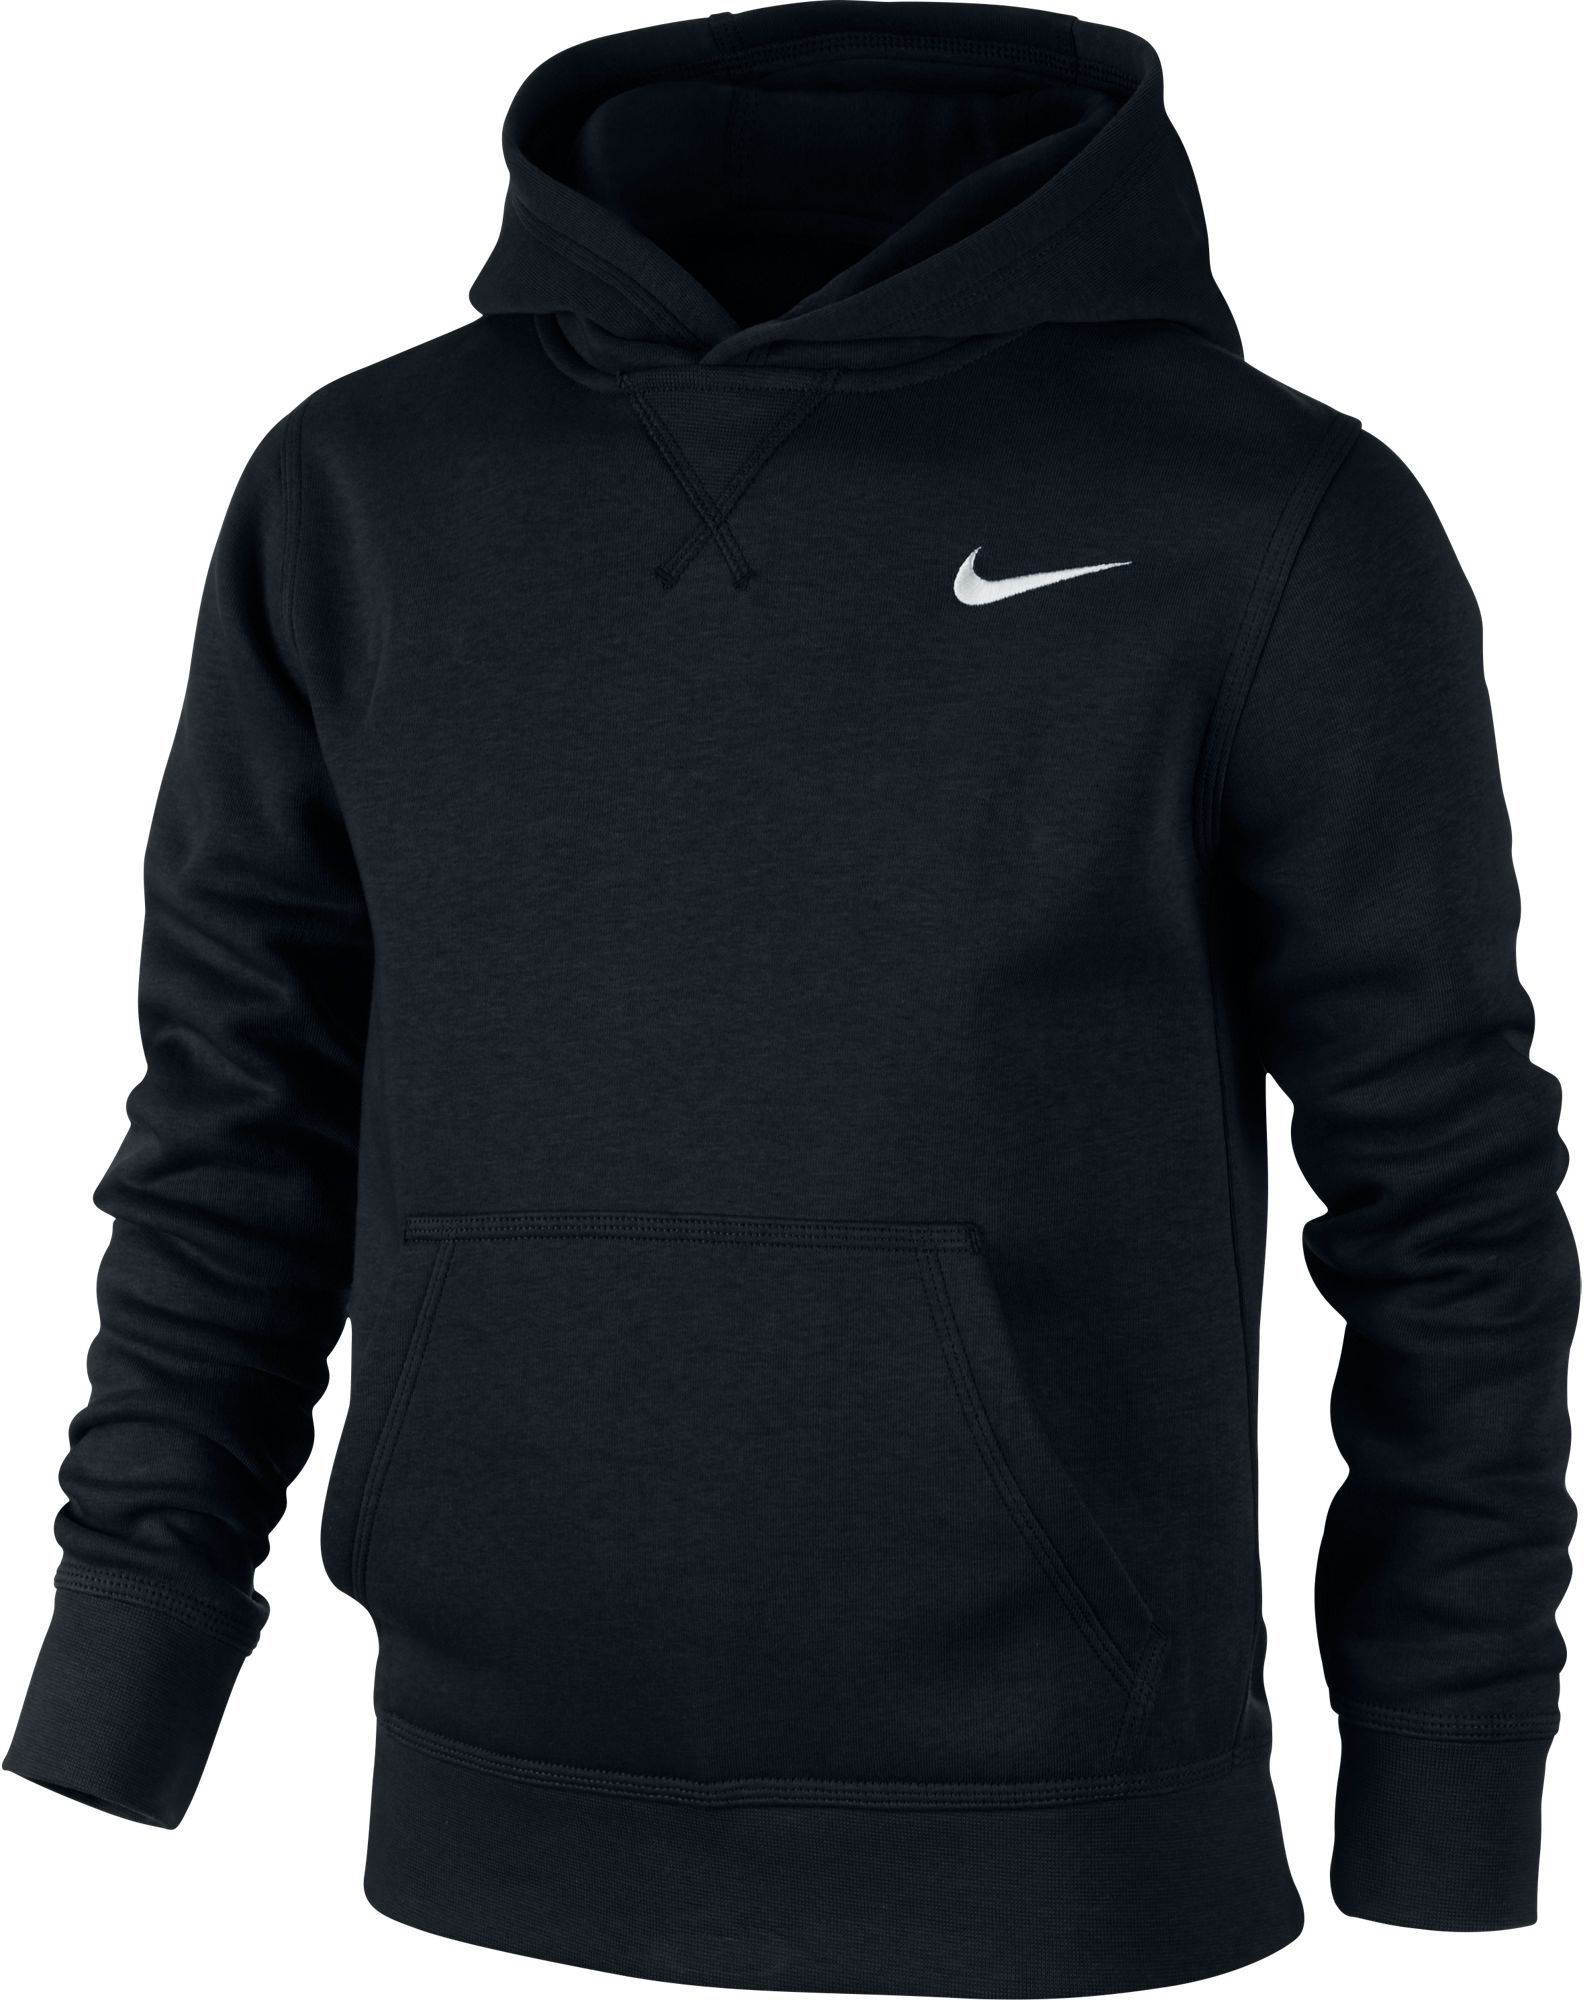 Boys Nike Hoodies On Sale | Heavenly Nightlife